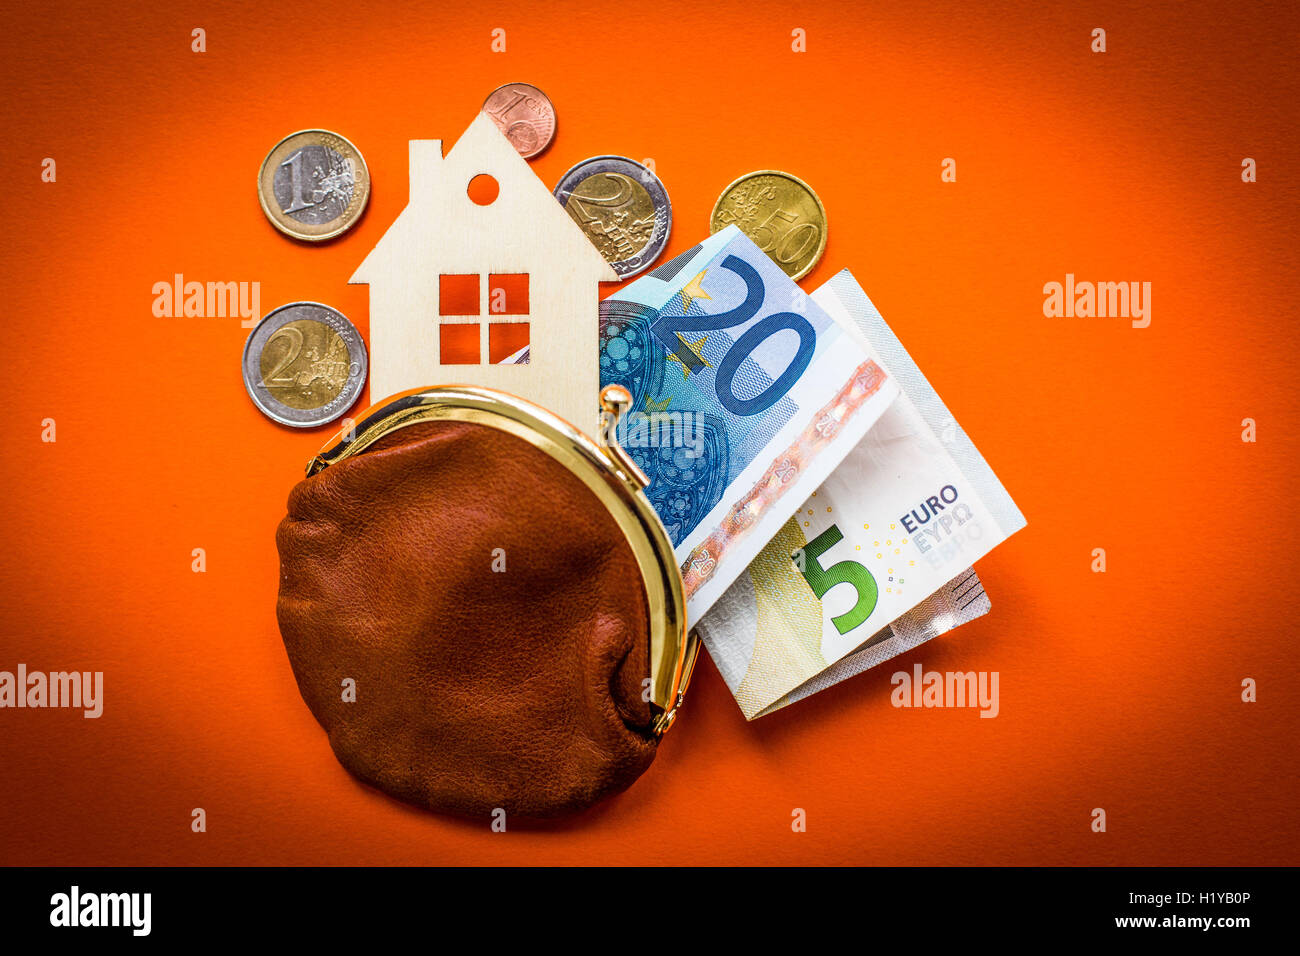 Cost of housing. - Stock Image